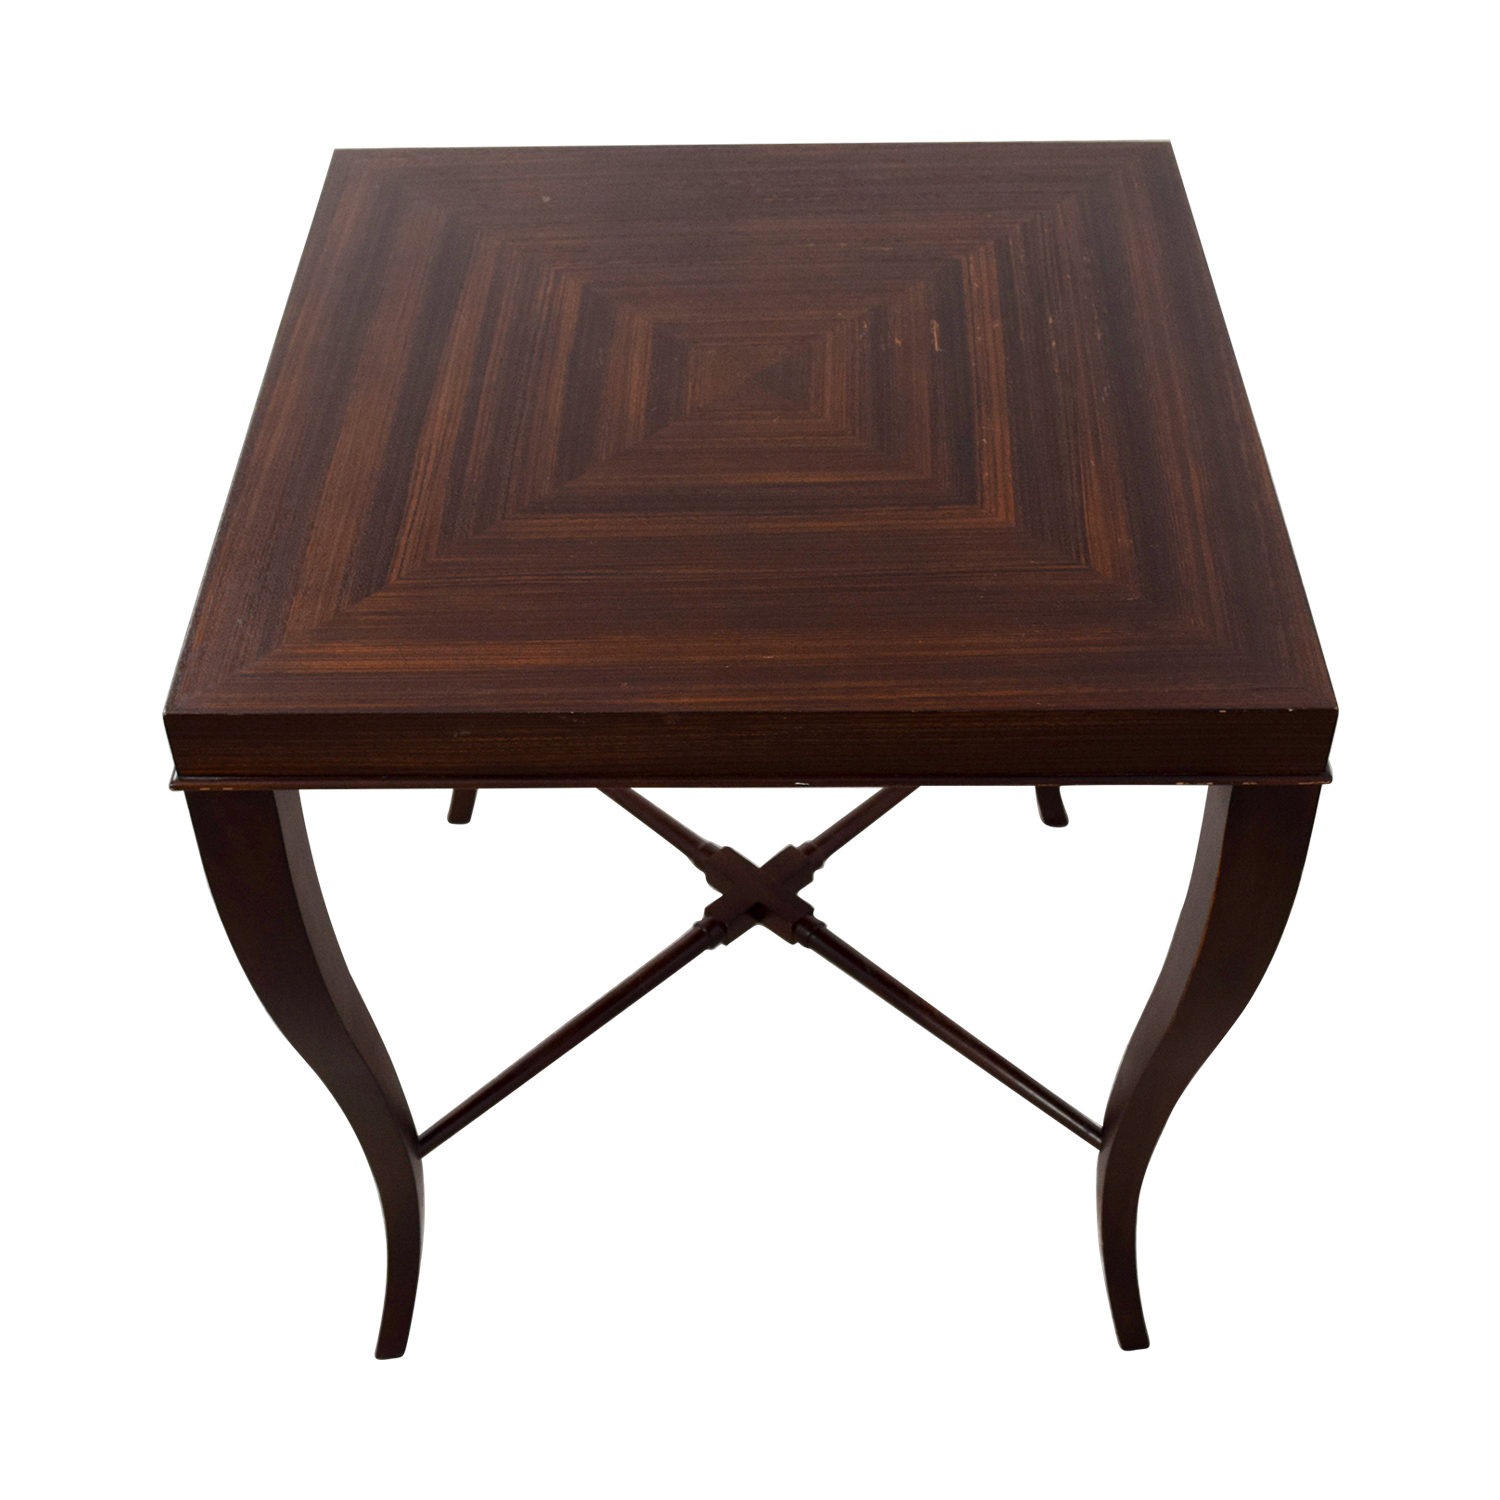 Ethan Allen Ethan Allen Wood Side Table coupon